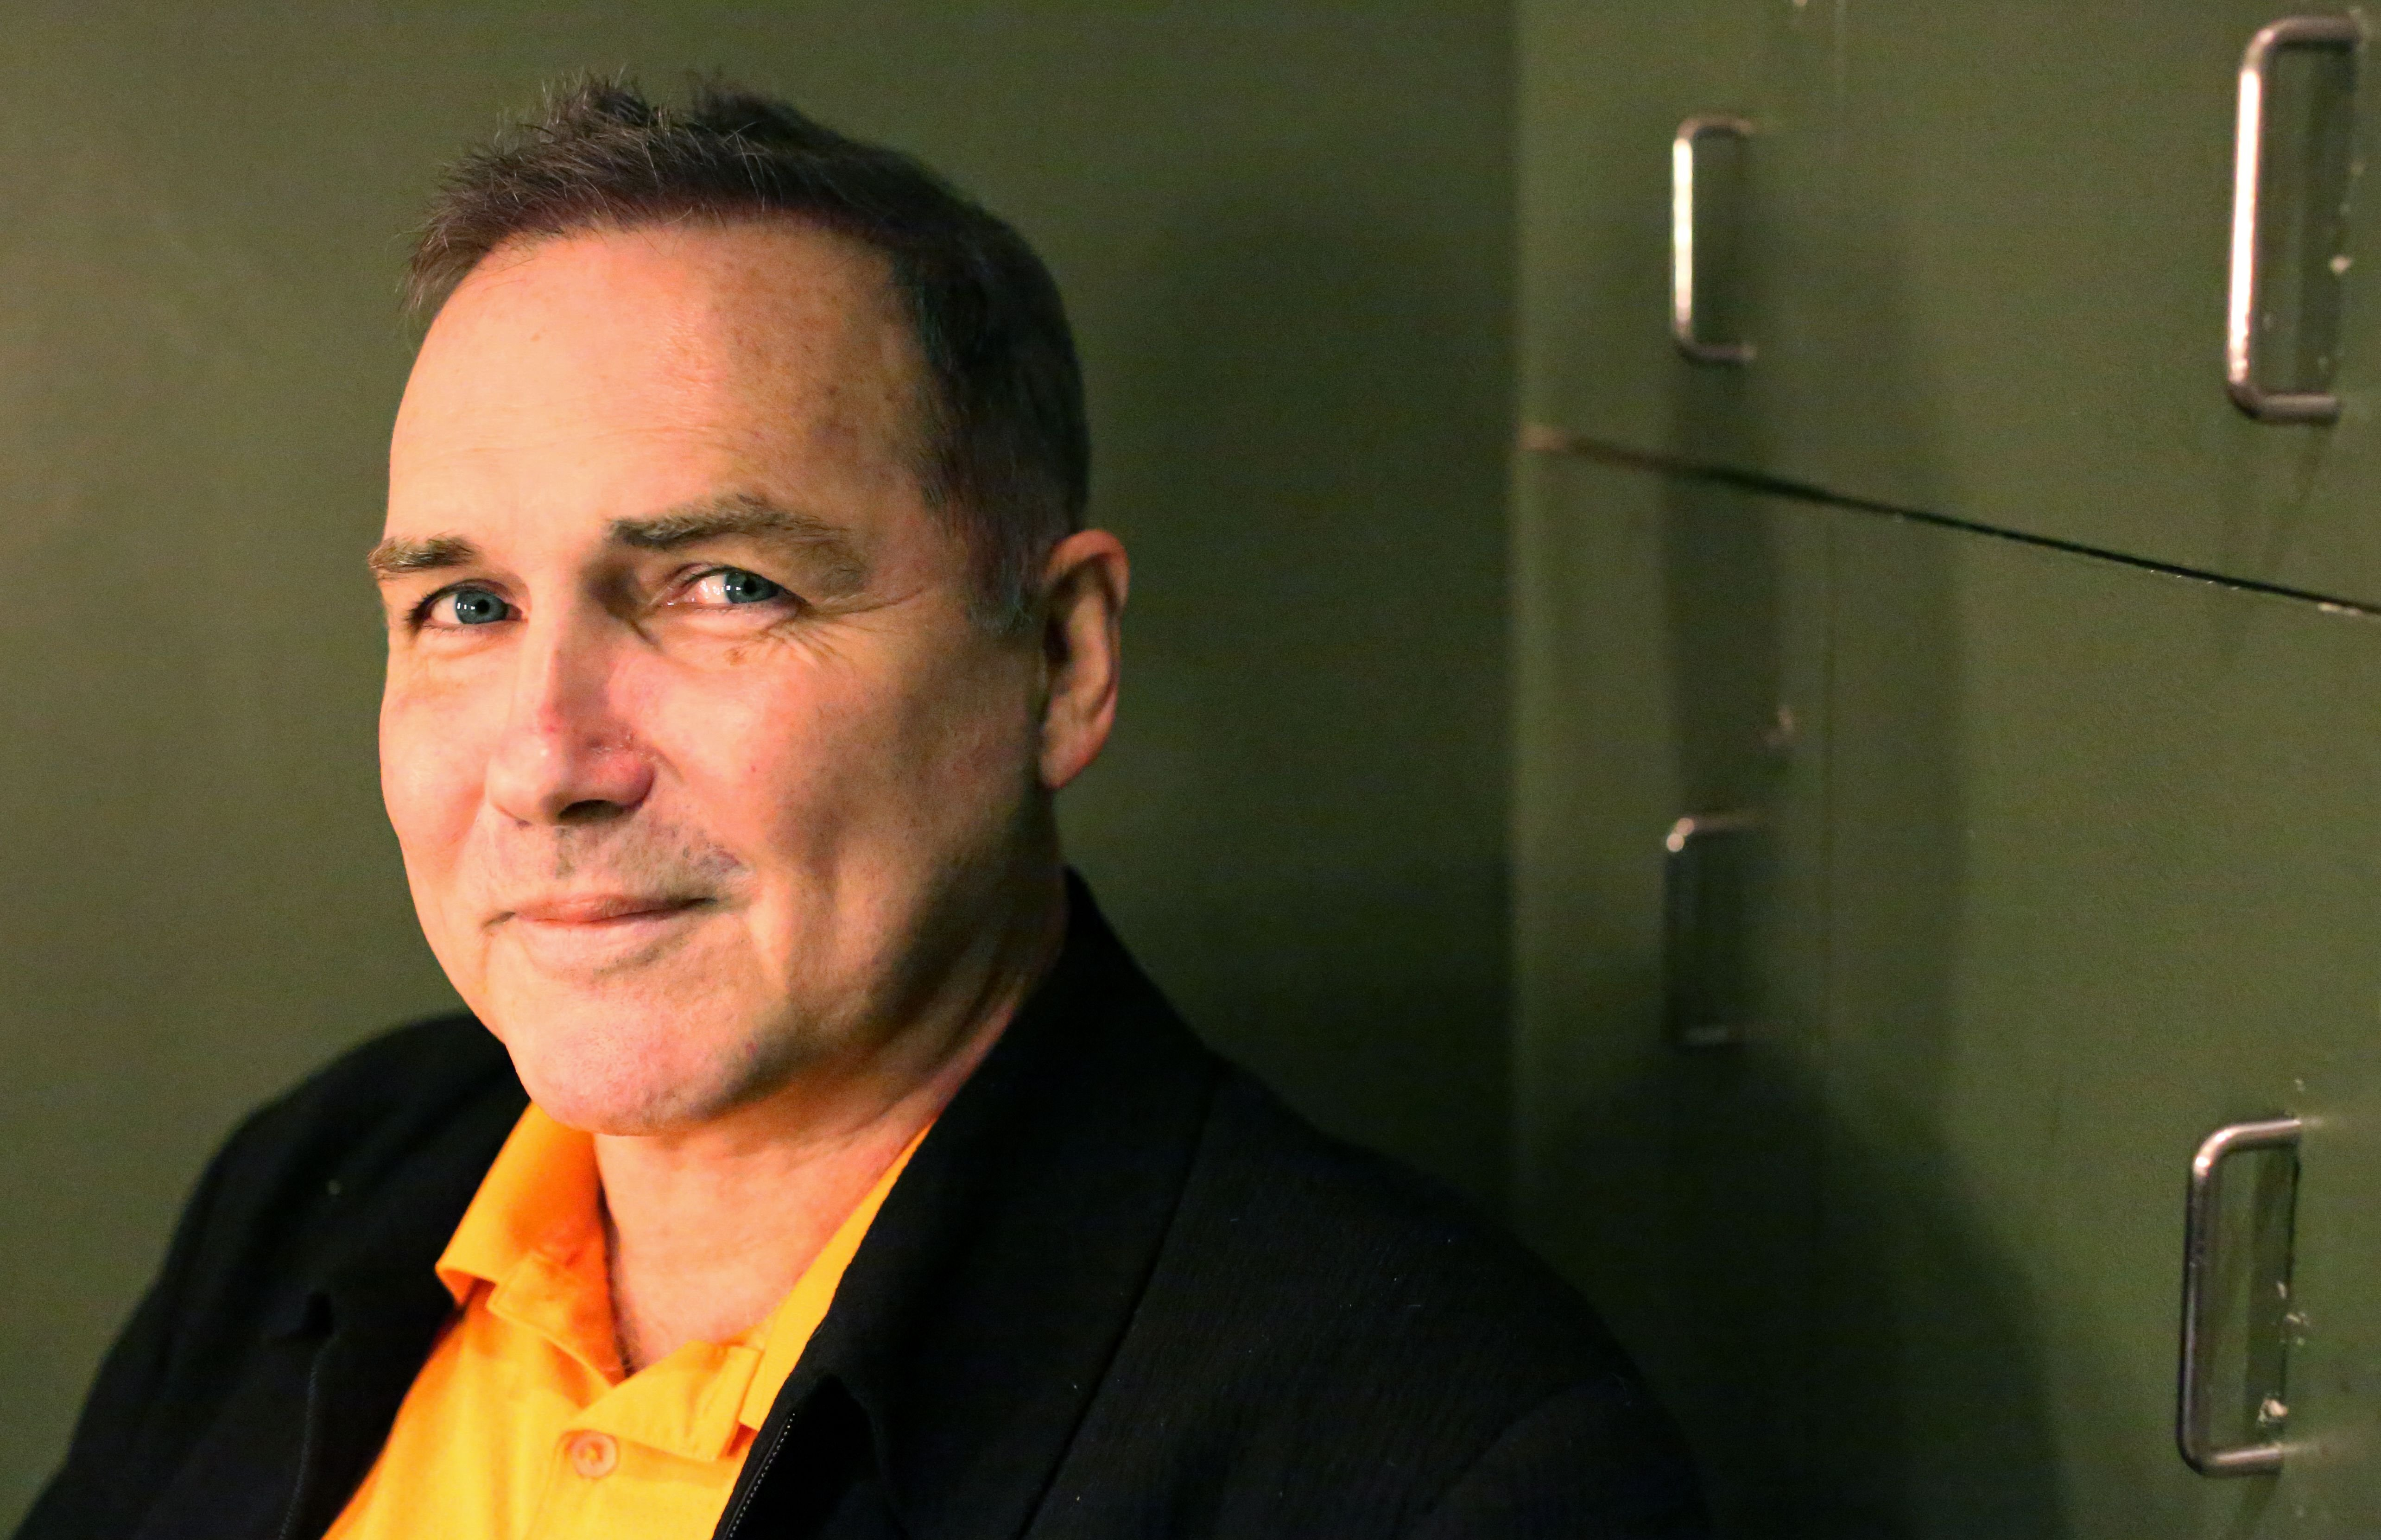 Comedian Norm MacDonald posed for a portrait while preparing to perform at Carolines on November 13, 2015 | Photo: Getty Images